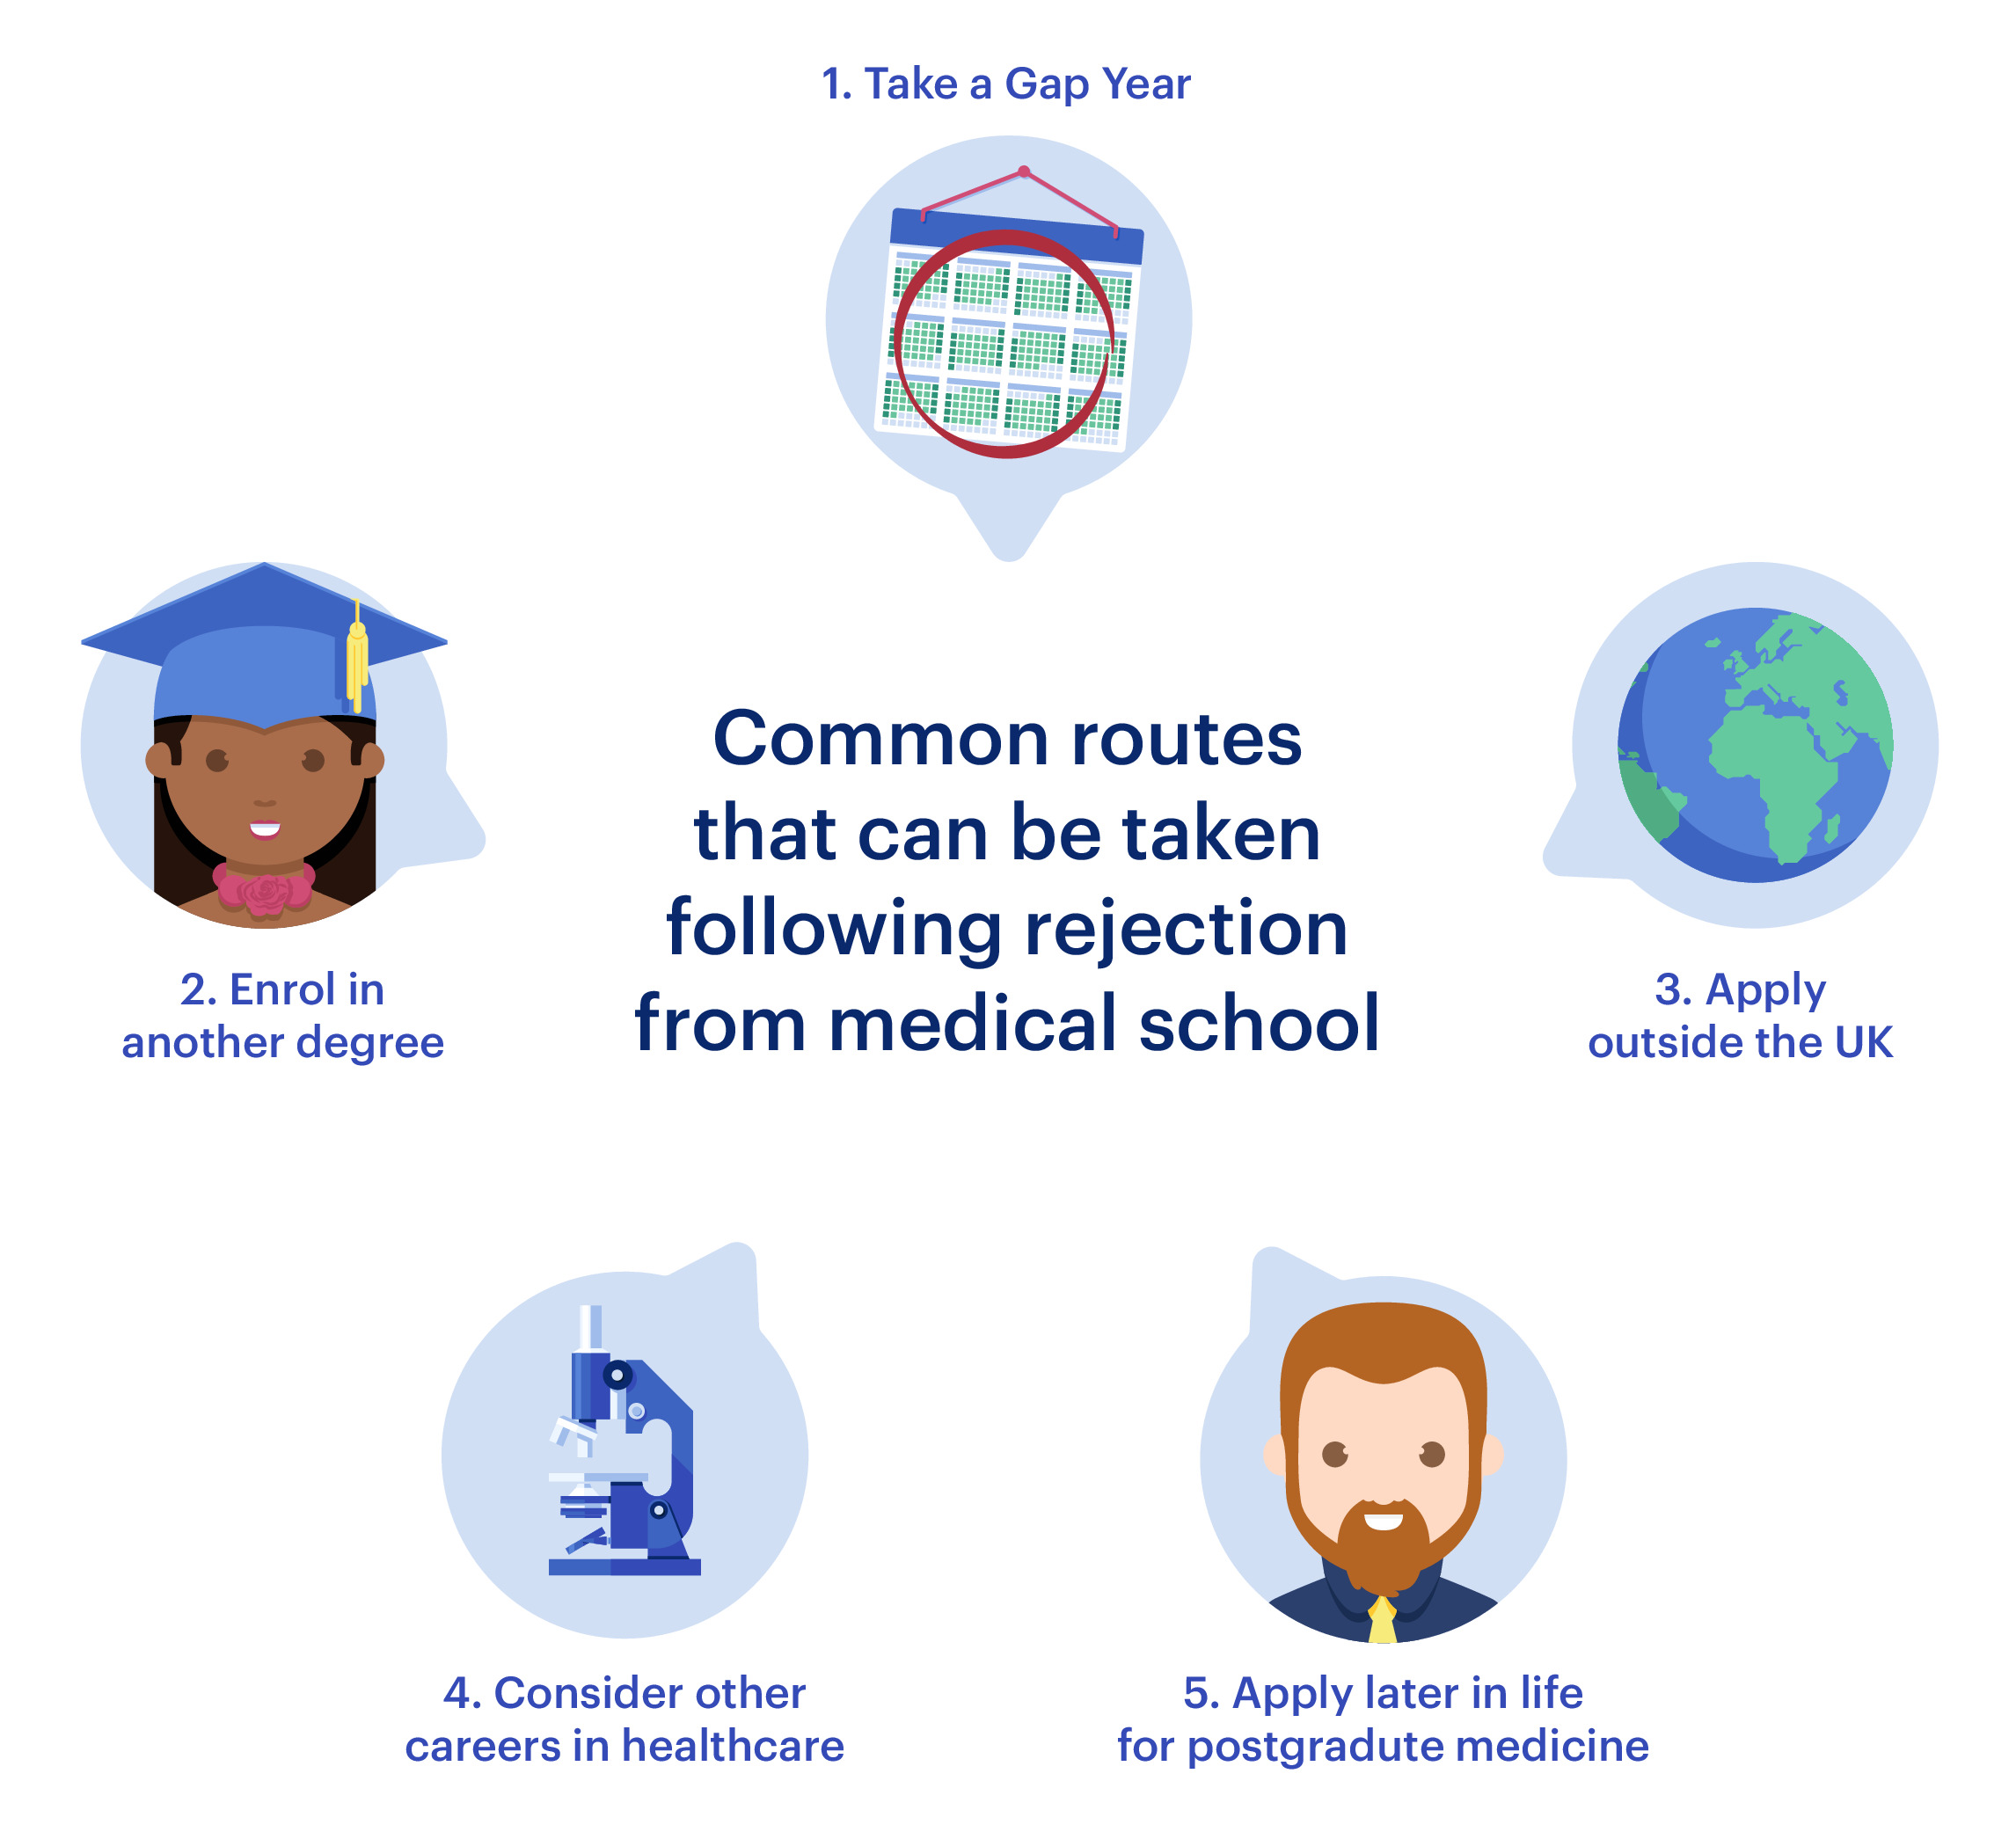 Common routes that can be taken following rejection from medical school including taking a gap year, enrolling in another degree, applying outside the UK, considering other careers in healthcare and applying later in life for postgraduate medicine.